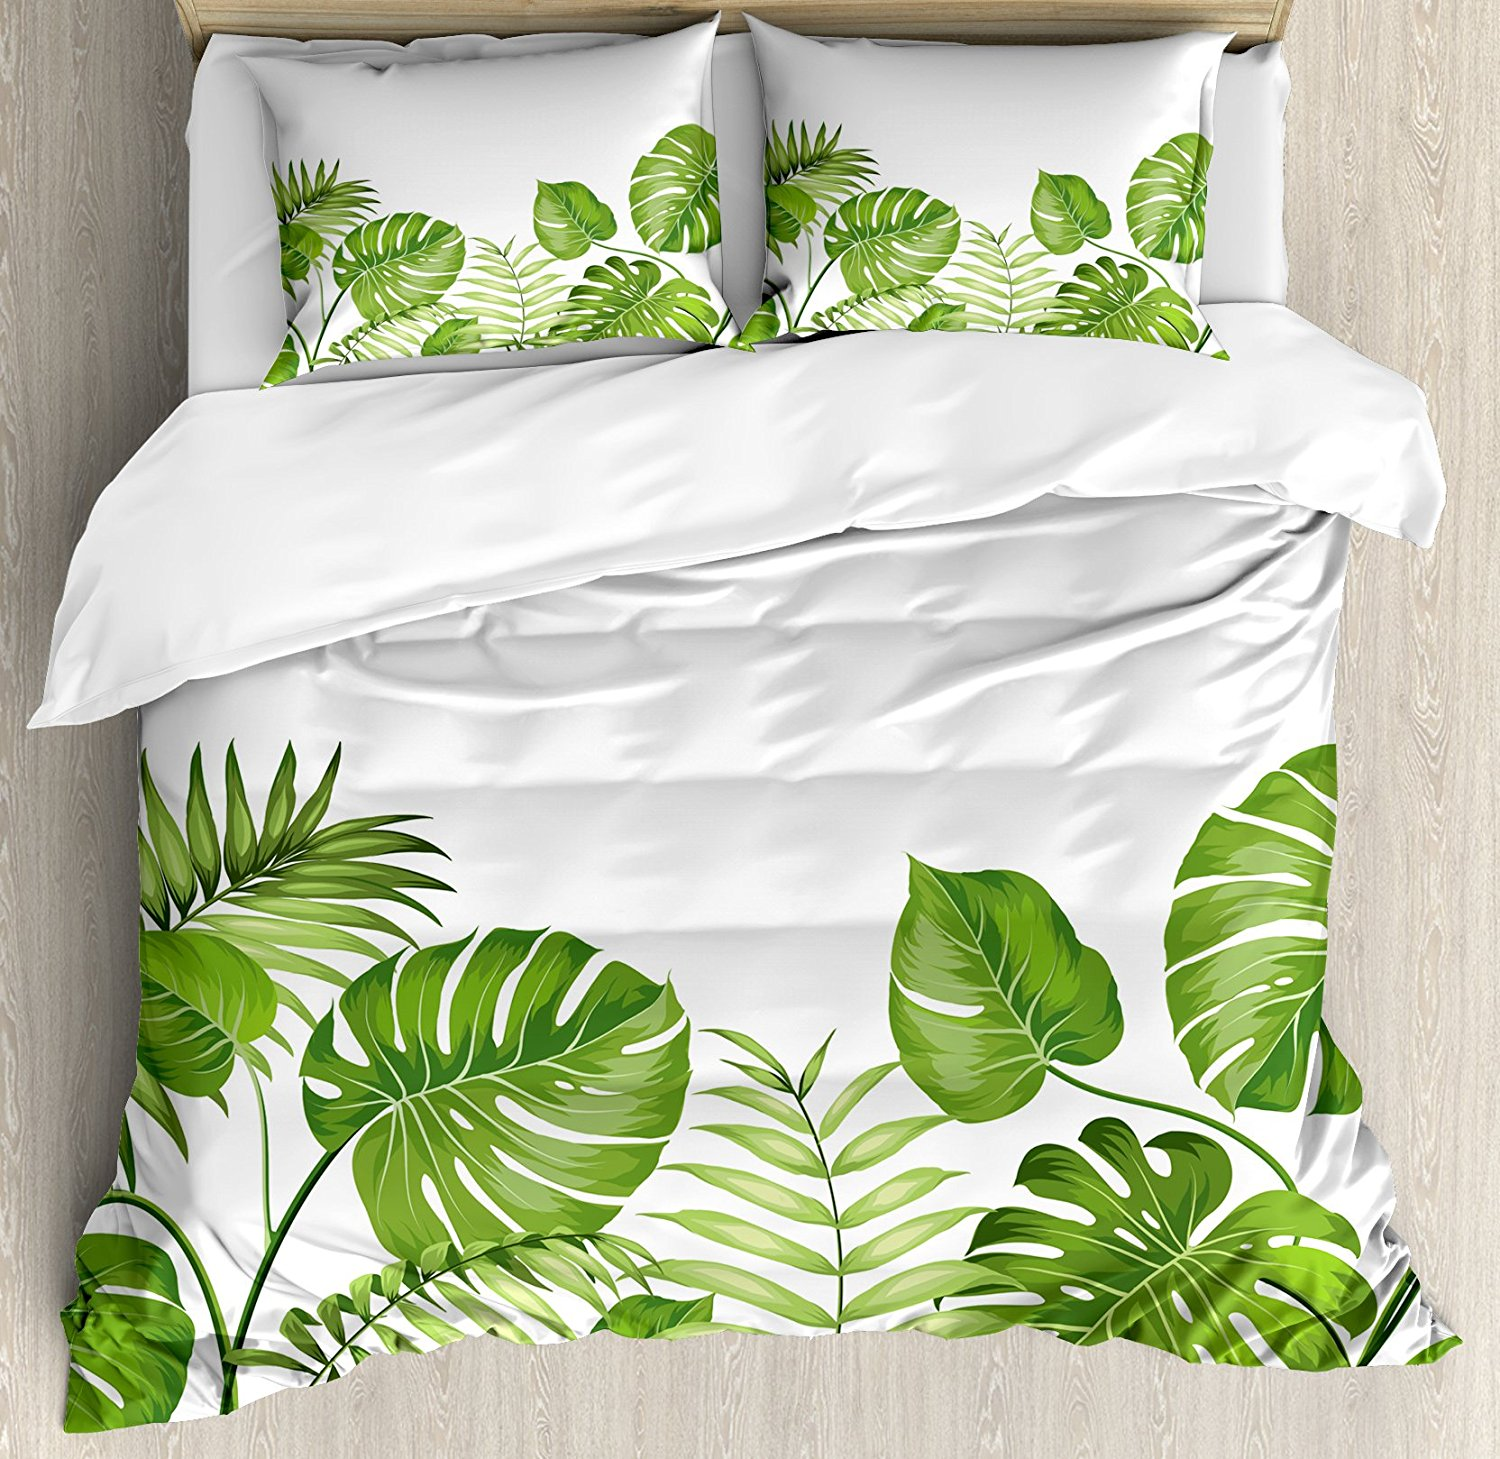 Leaf Duvet Cover Set Nature Jungle Forest Rainforest Inspired Leaves Plant Foliage Swirls Botanic Image, 4 Piece Bedding Set